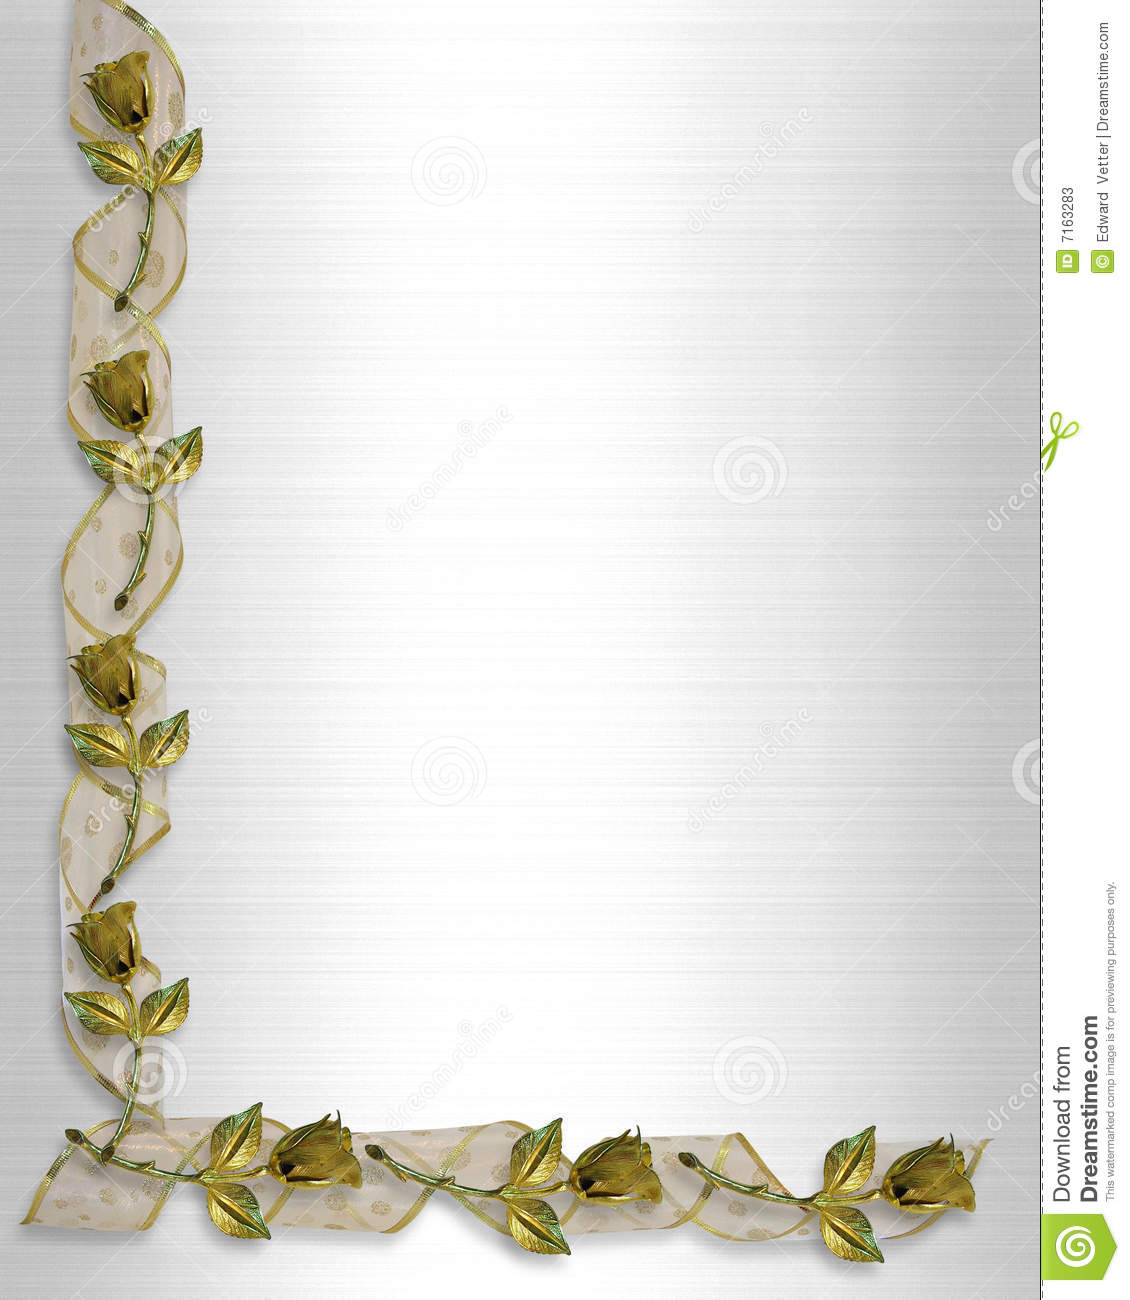 Golden Roses And Ribbons Wedding Invitation Stock Photos ...